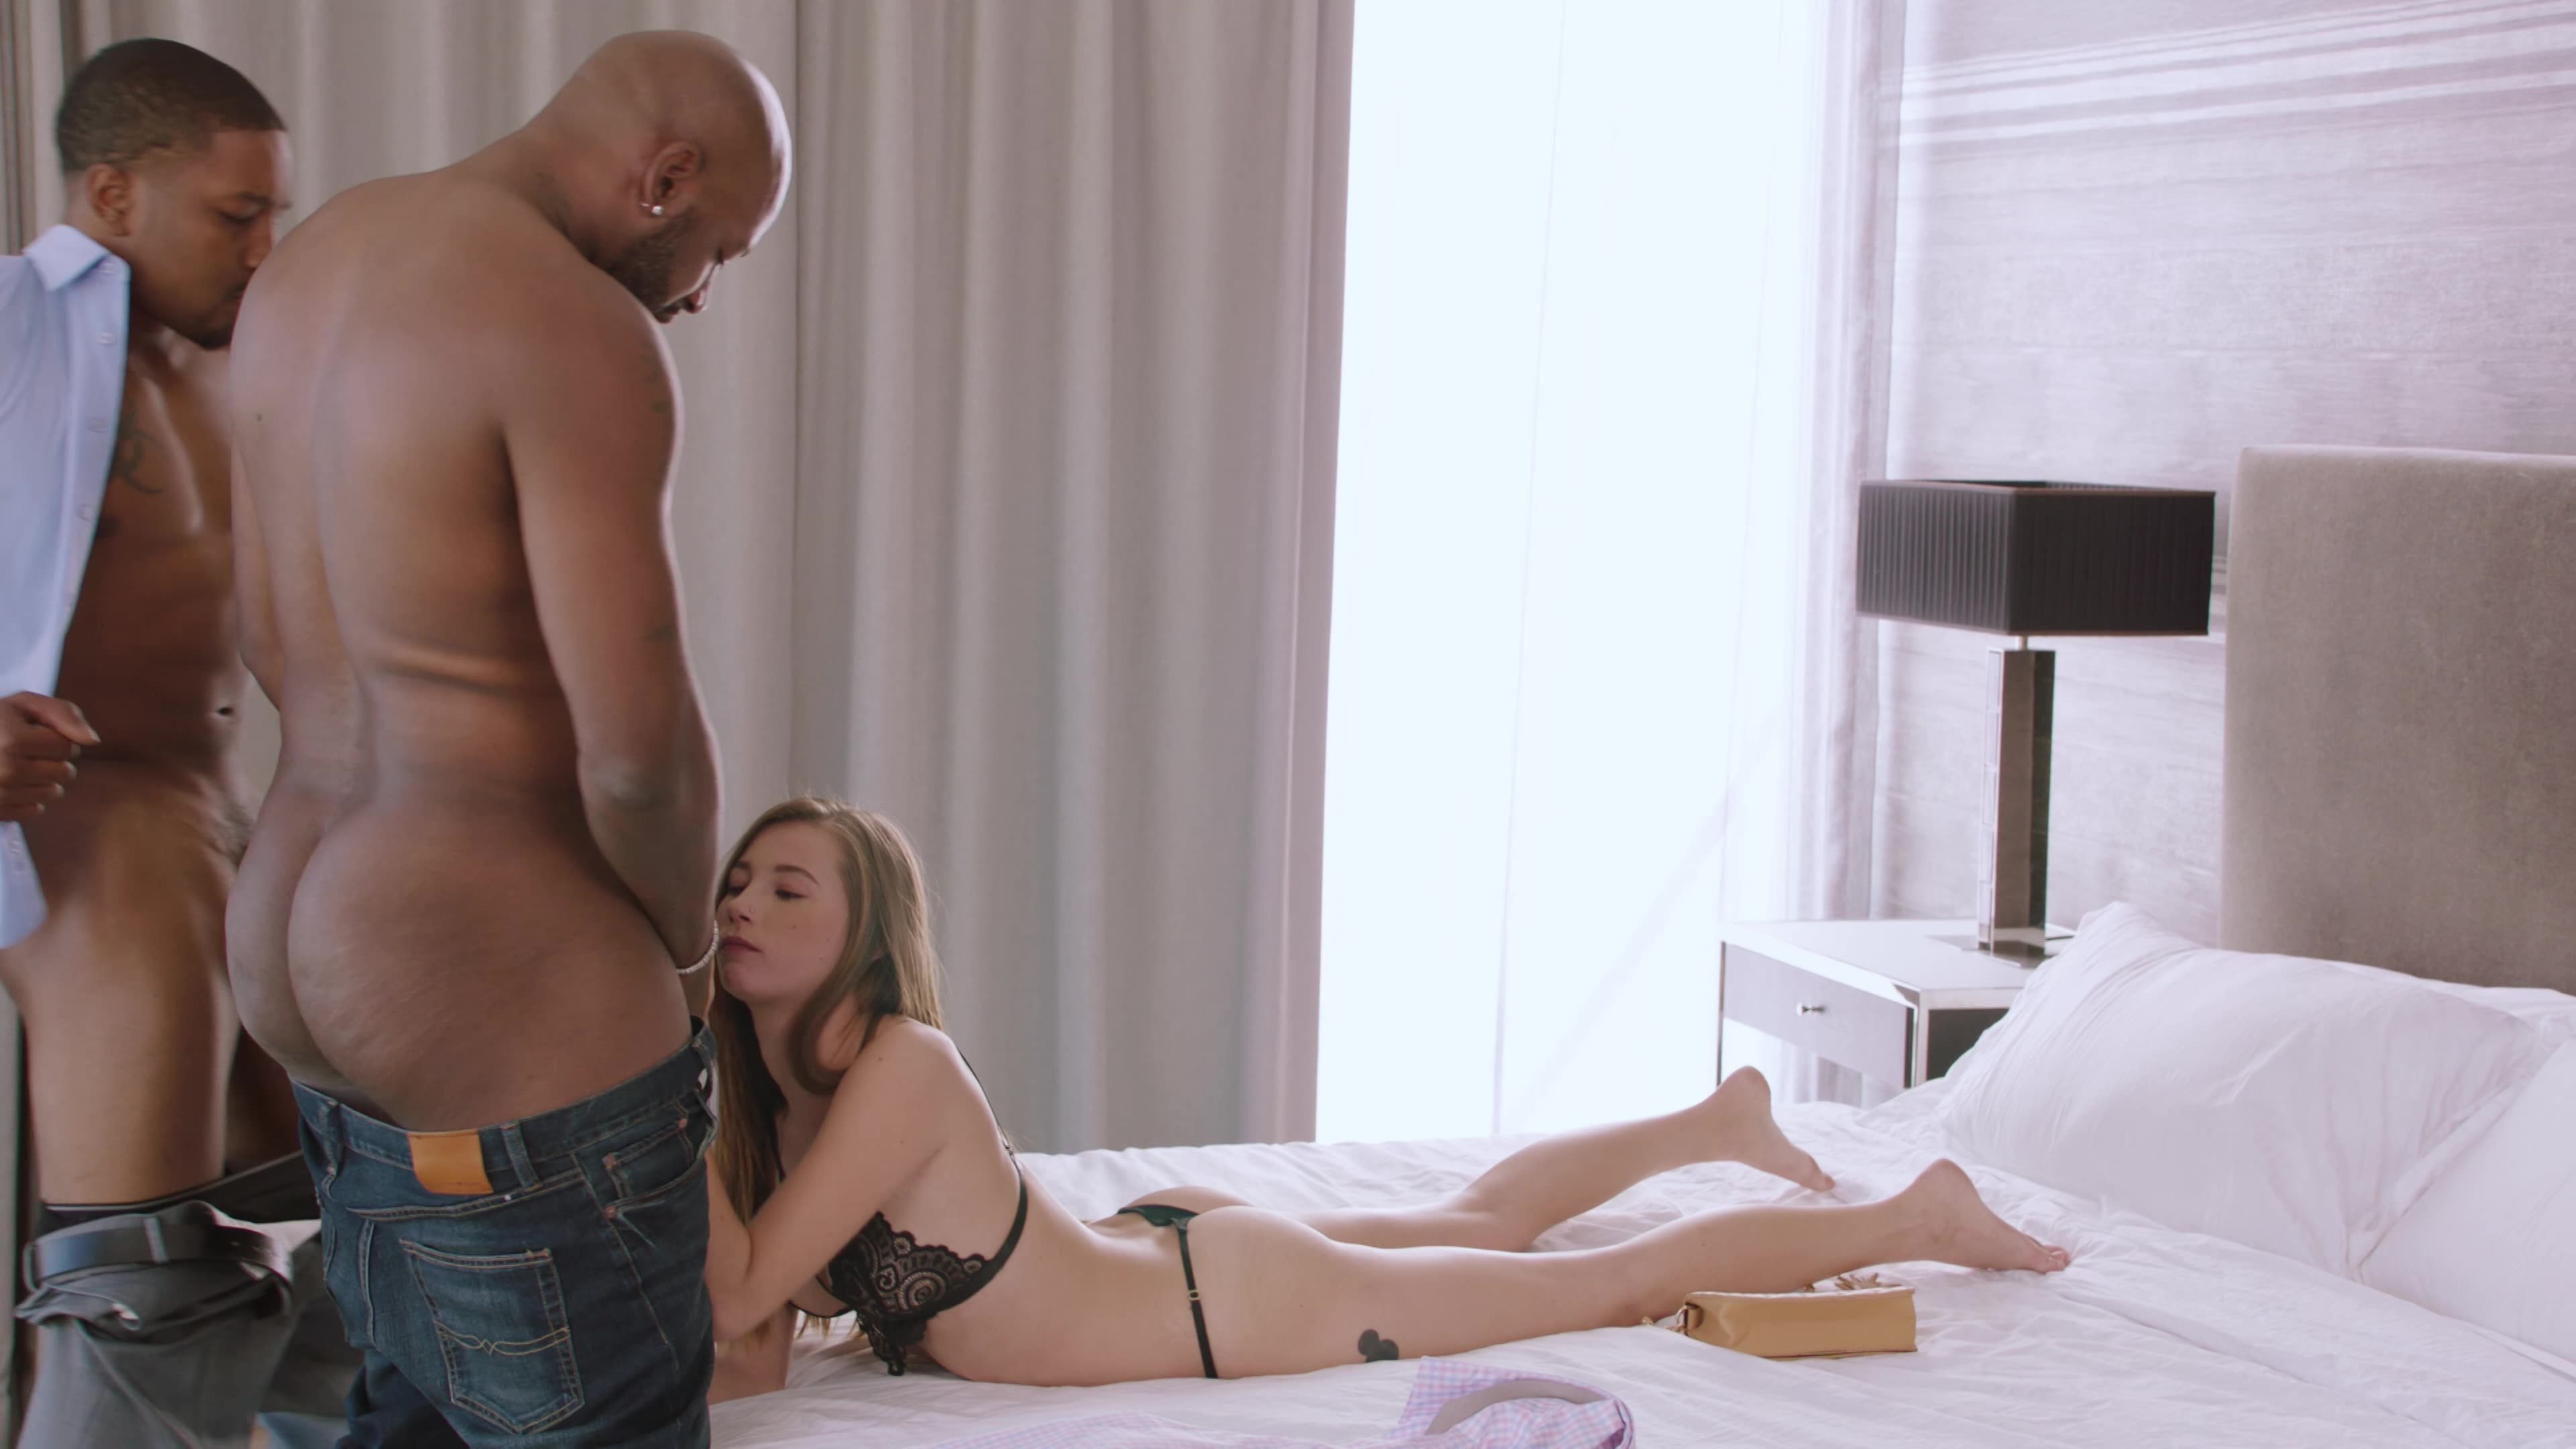 Hot Couple Big Booty Latina And Euro Hunk Rough Sex Homemade Violet Starr